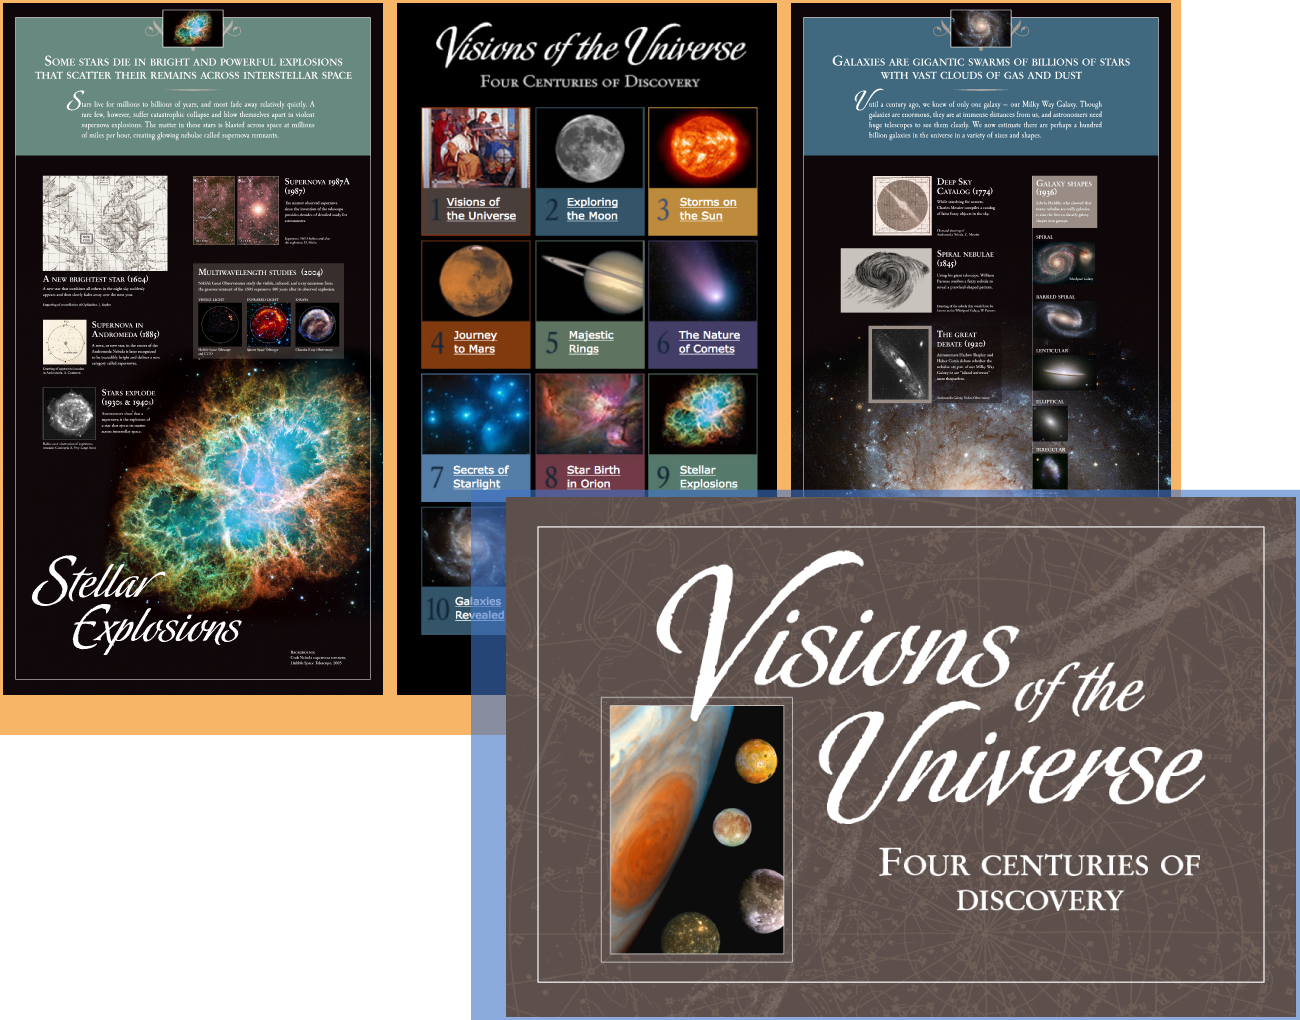 Visions of the Universe - This exhibit includes twelve panels that feature key astronomical discoveries from the past 400 years. The exhibit also highlights technological advancements that made these discoveries possible. Exhibit topics range from celestial objects within our own